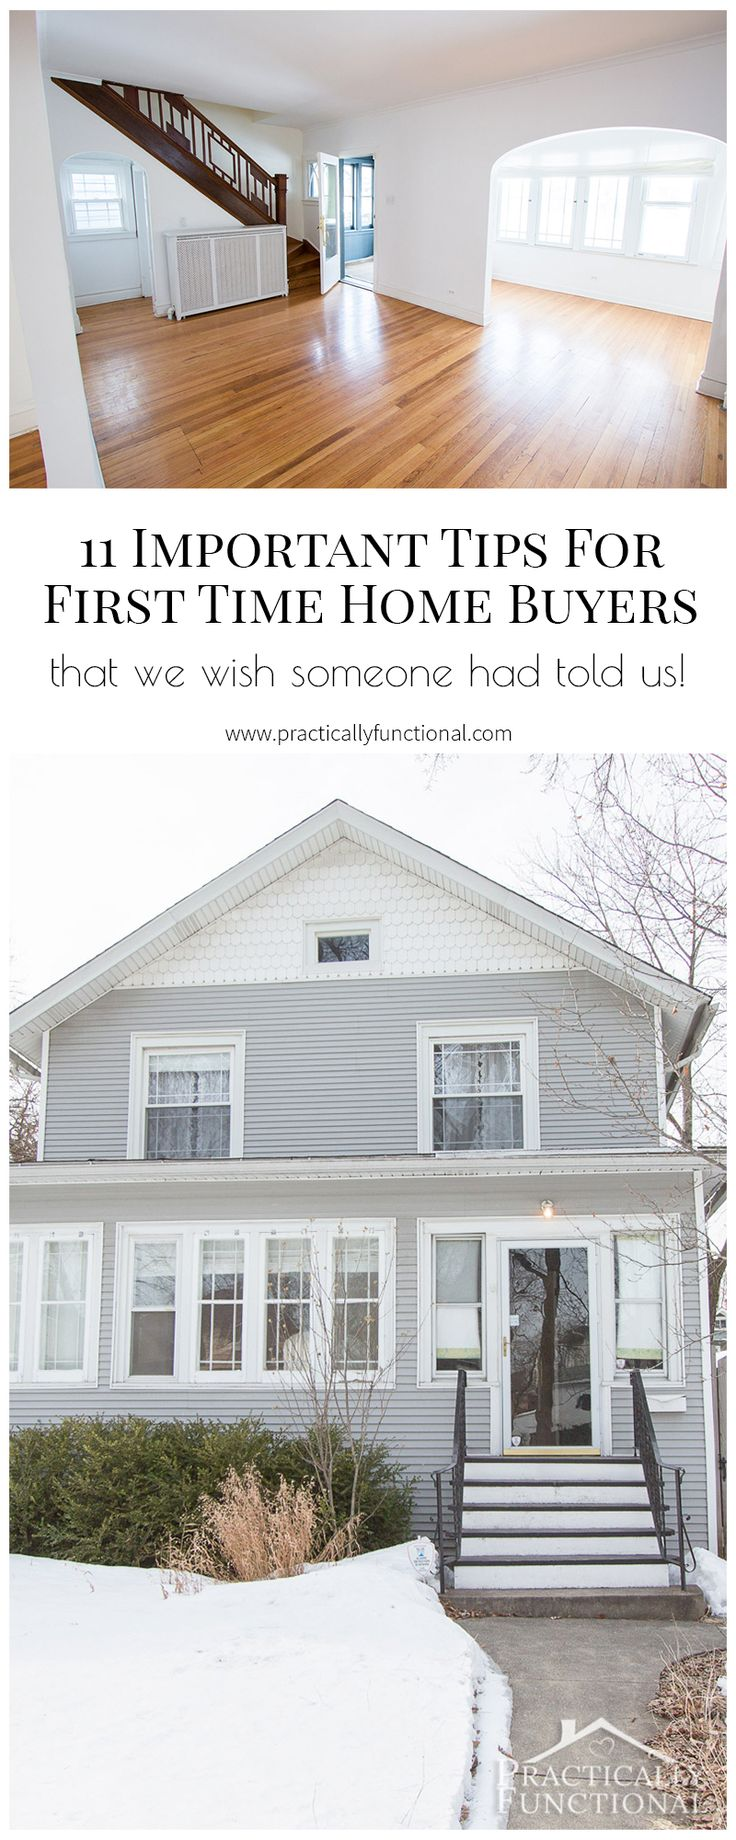 177 best First Time Home Buyers images on Pinterest | Affordable ...